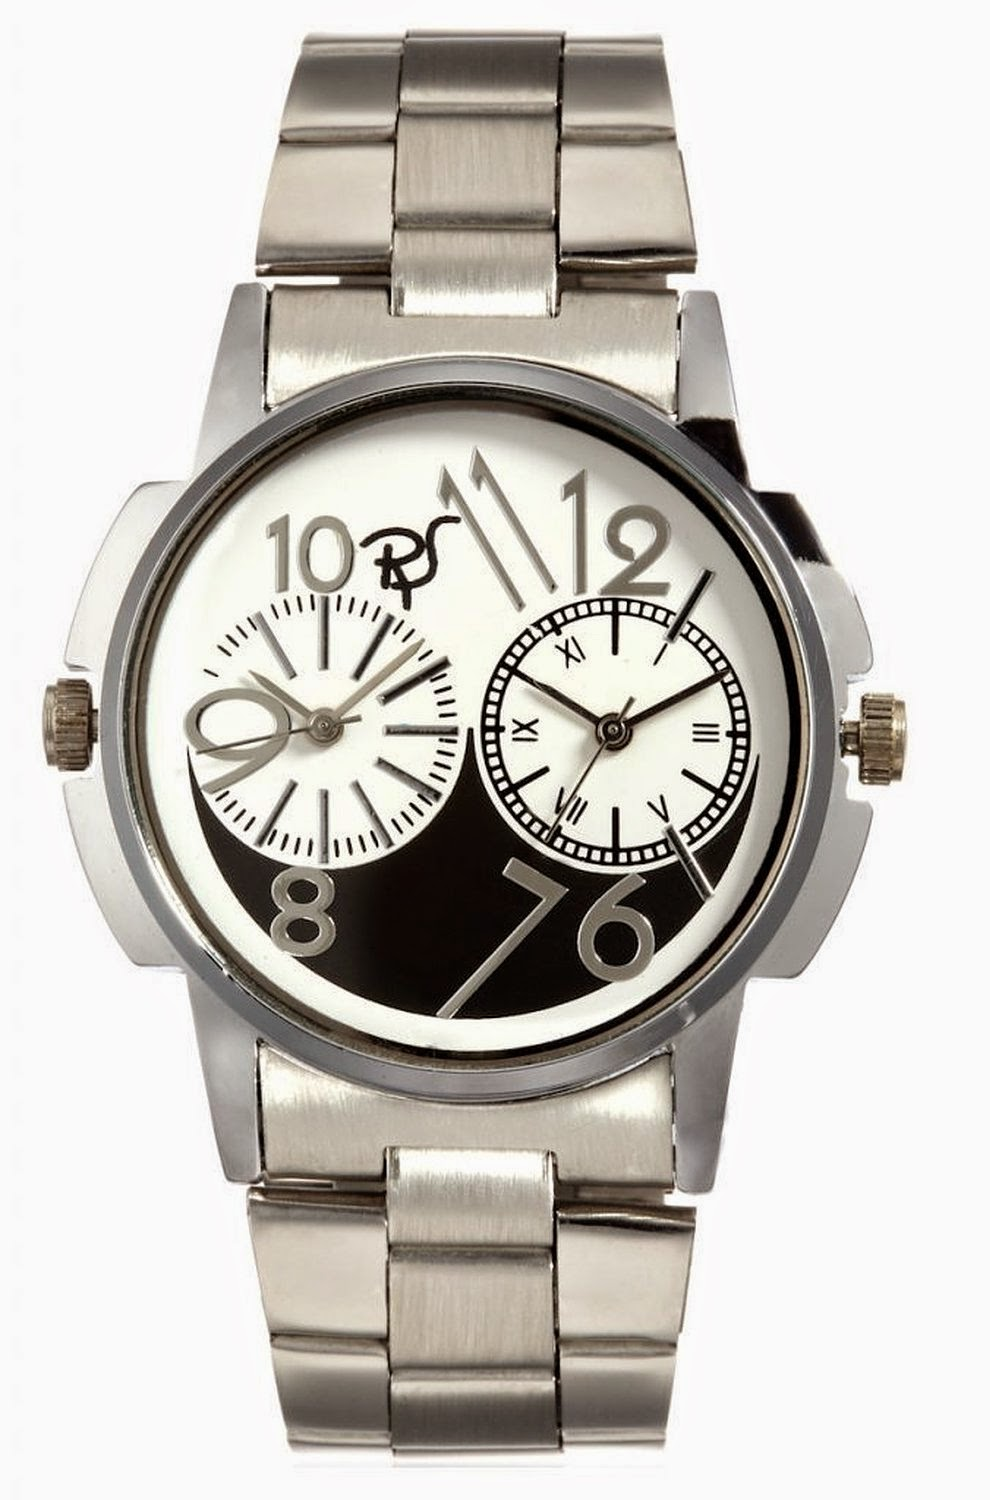 Buy RICO SORDI Mens Multifunctional Dual Time Steel Watch with black & white dial Rs 499 only at Amazon